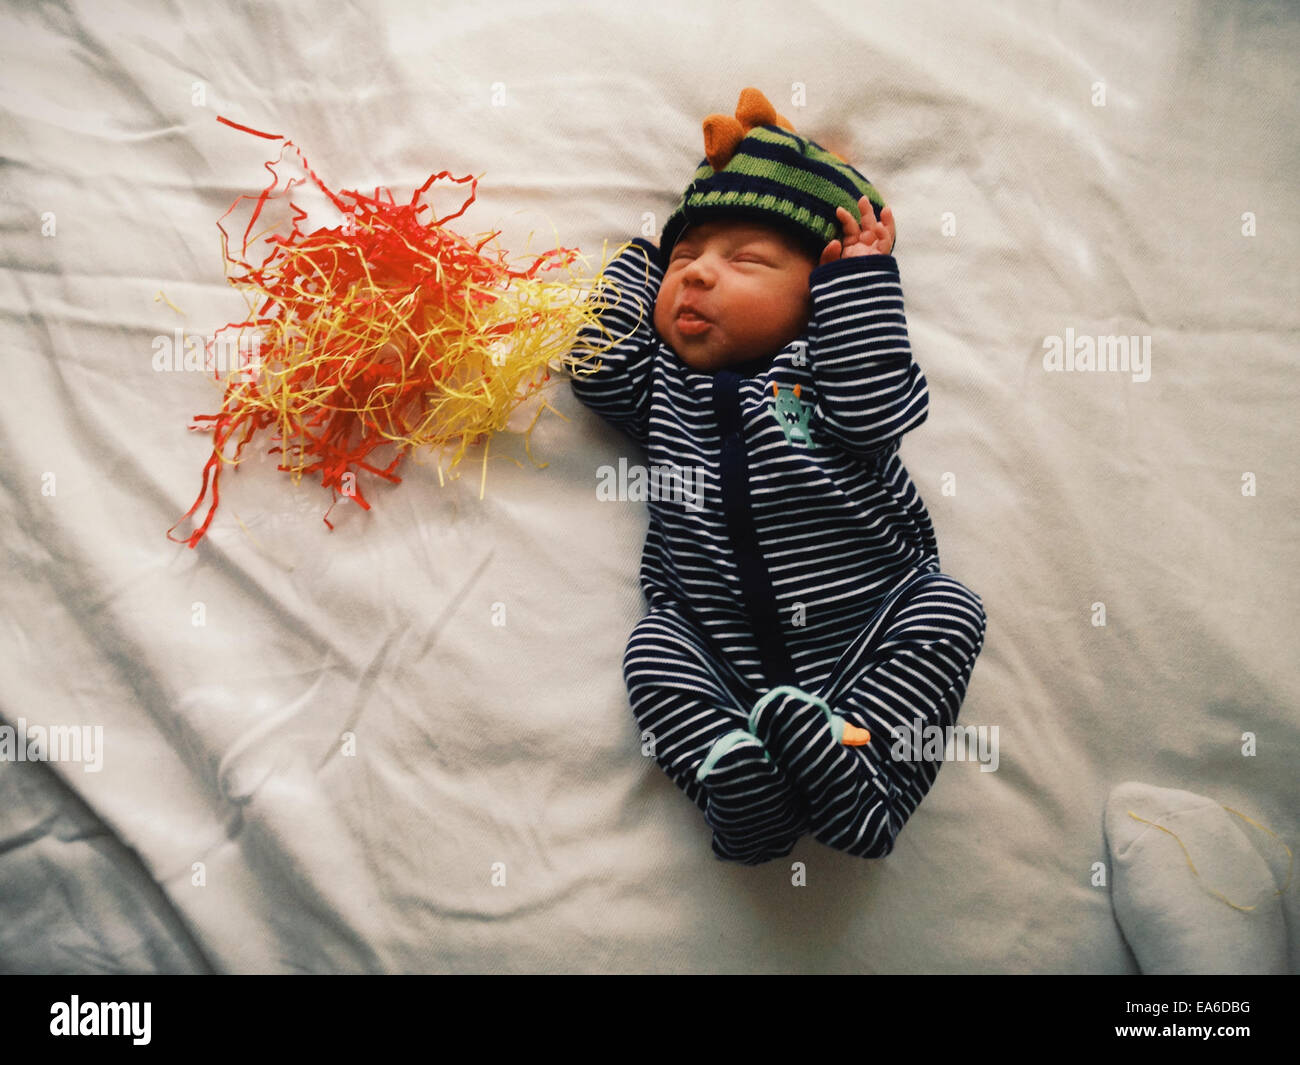 Baby boy making faces - Stock Image